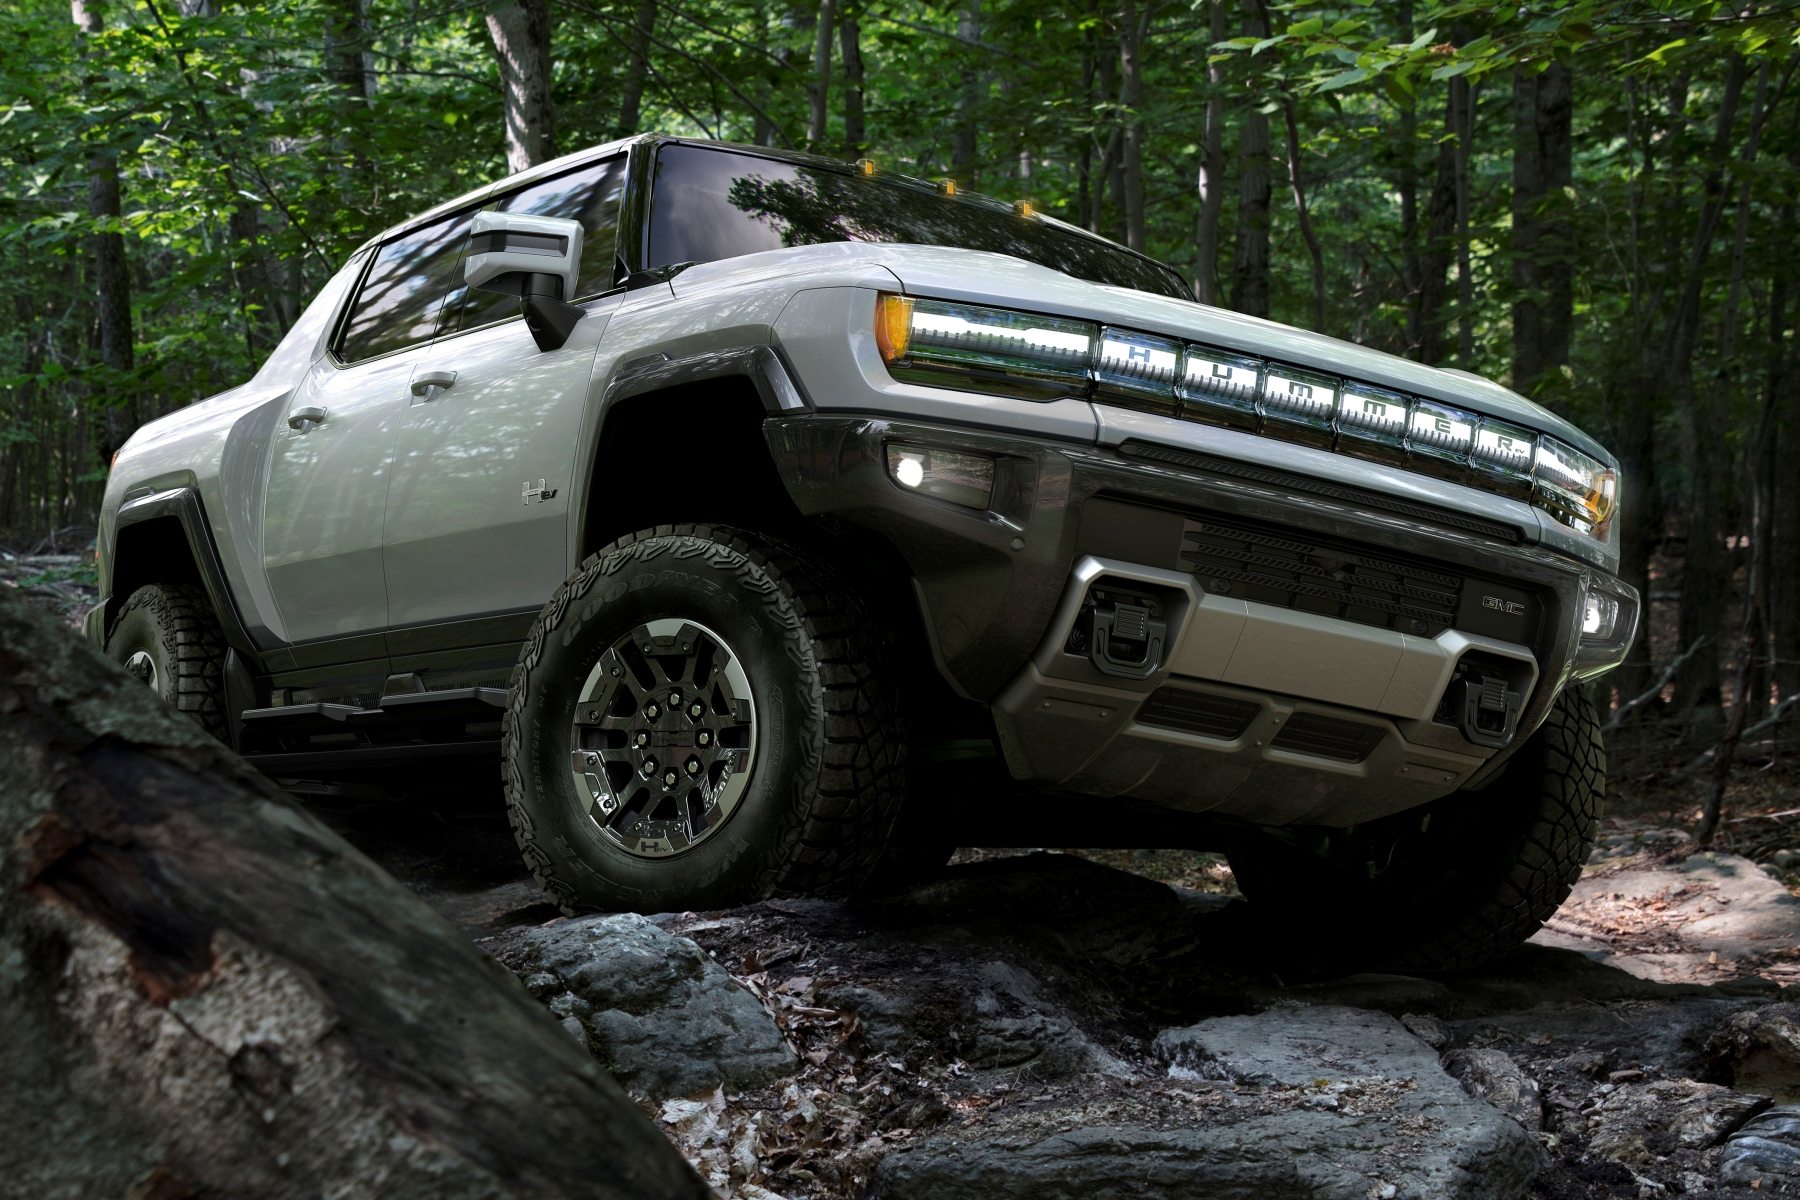 The 2022 GMC HUMMER EV is designed to be an off-road beast, with all-new features developed to conquer virtually any obstacle or terrain.